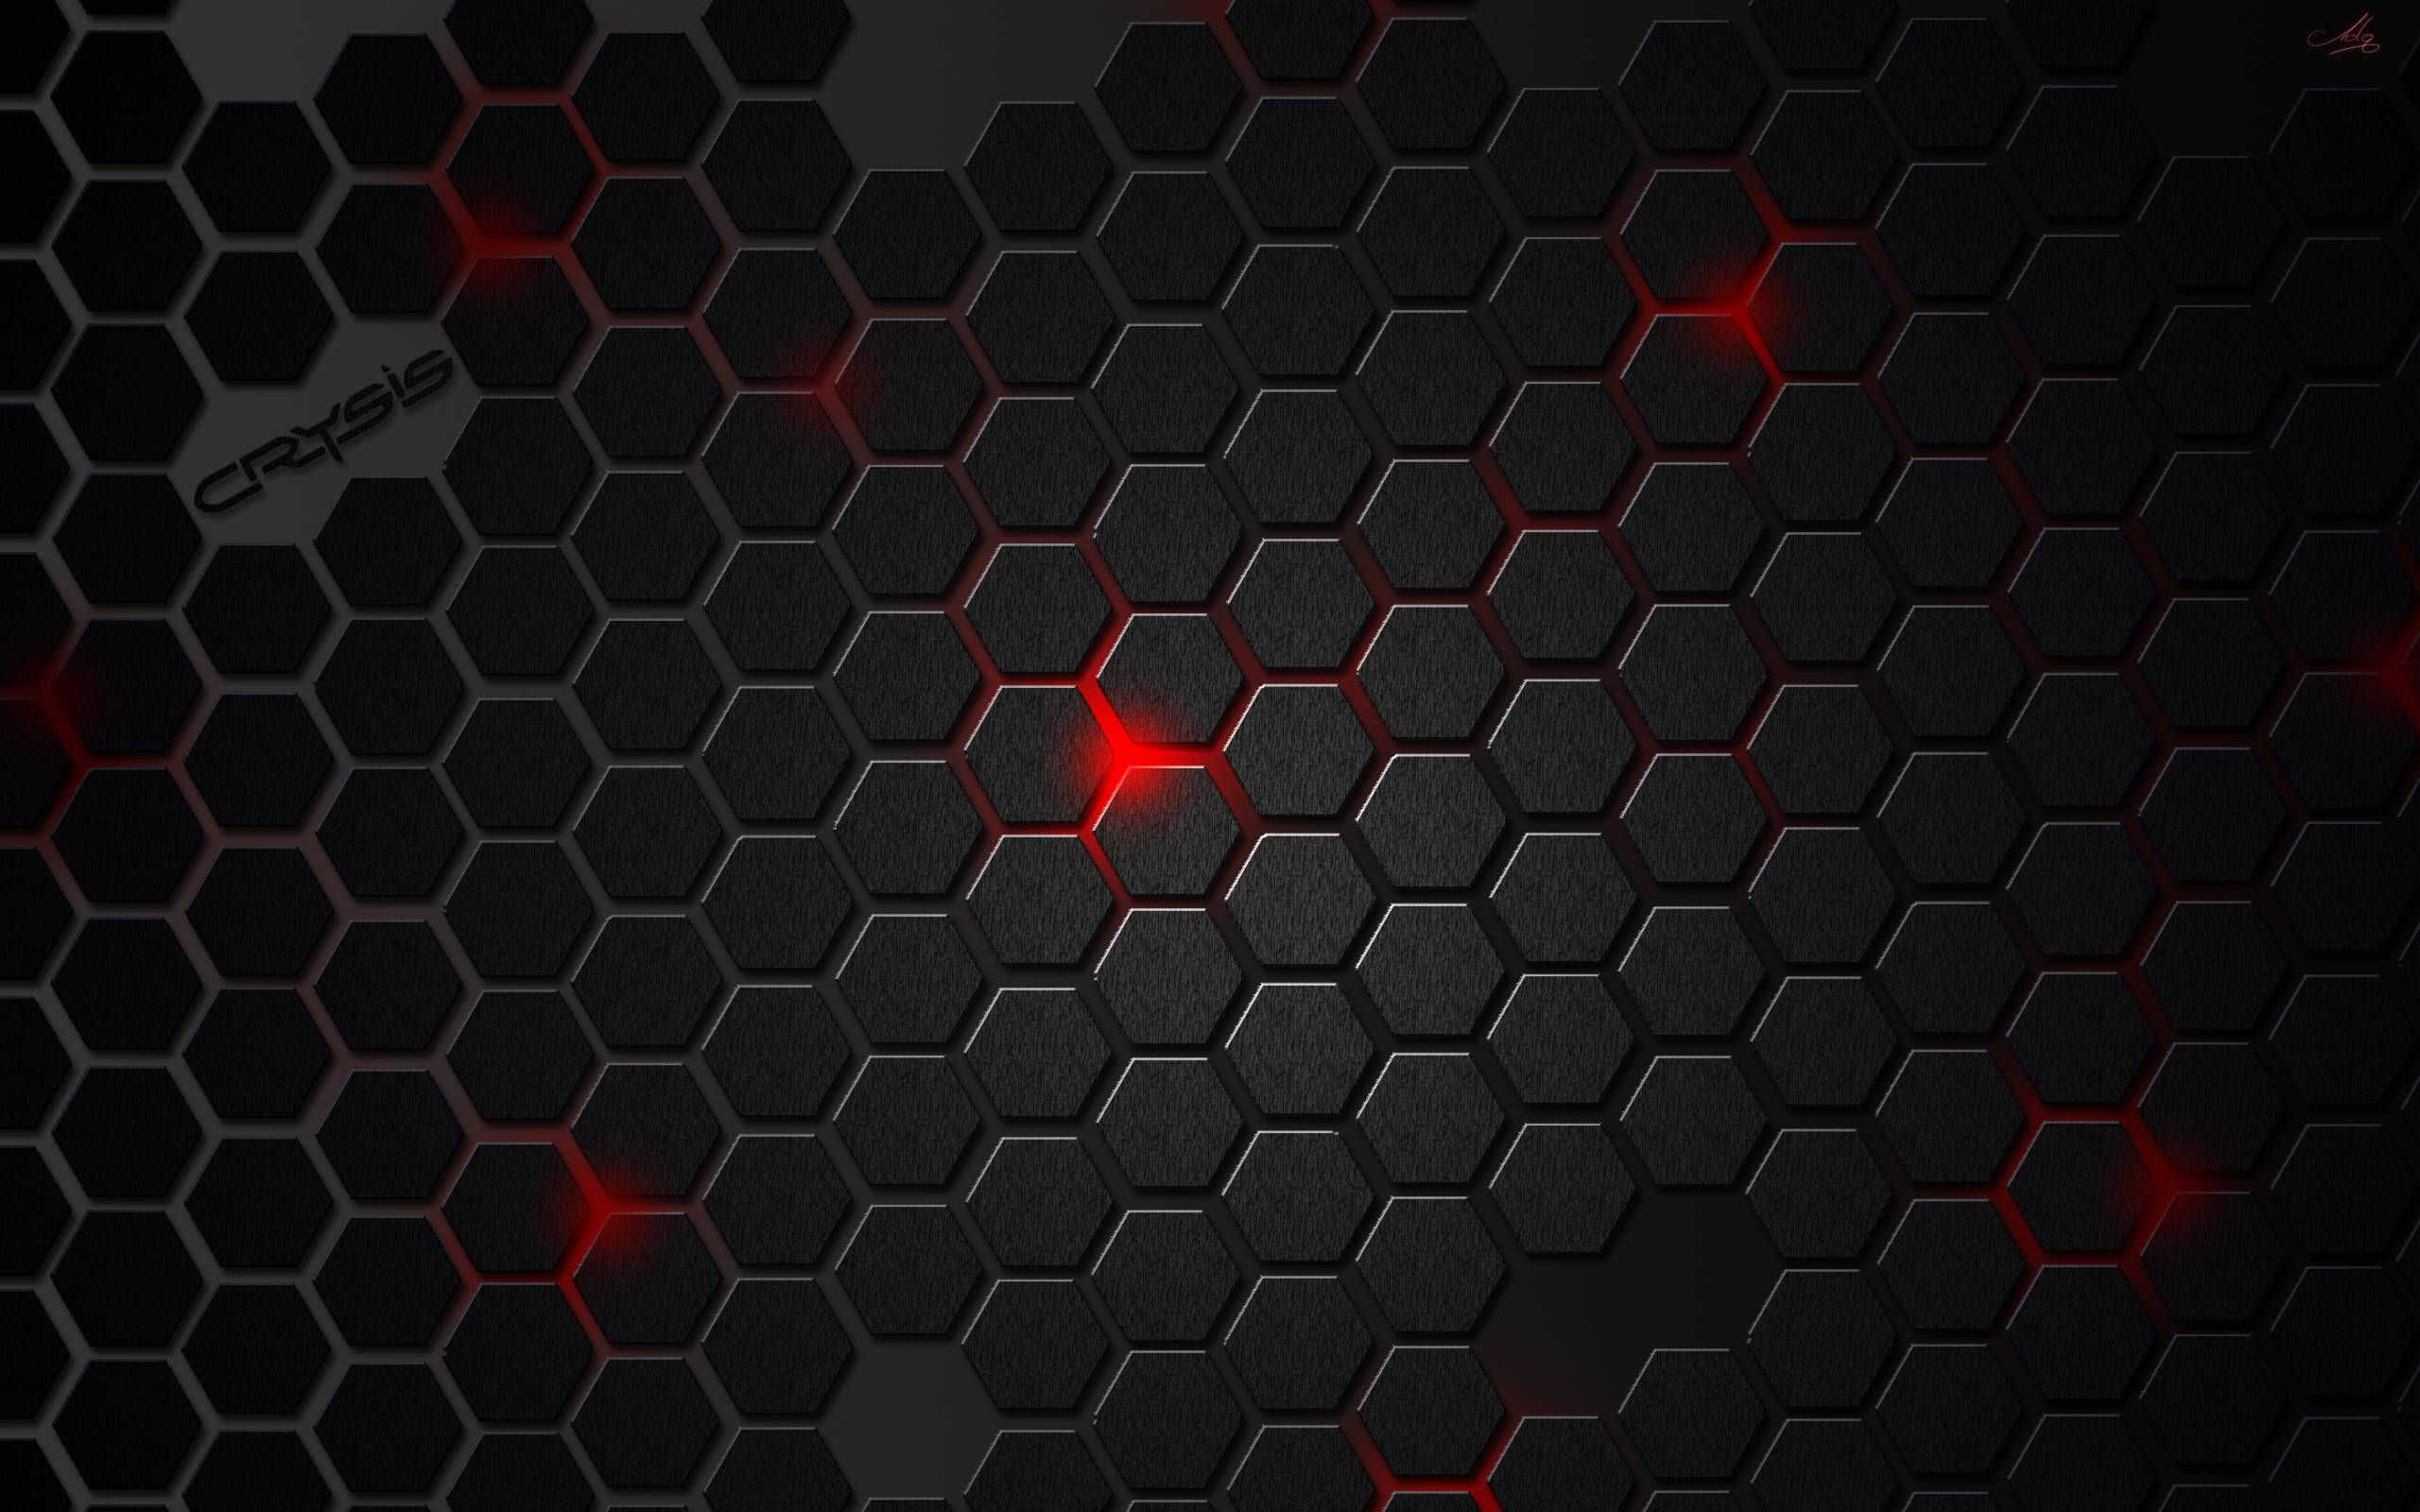 Wallpaper Hd Design Red And Black